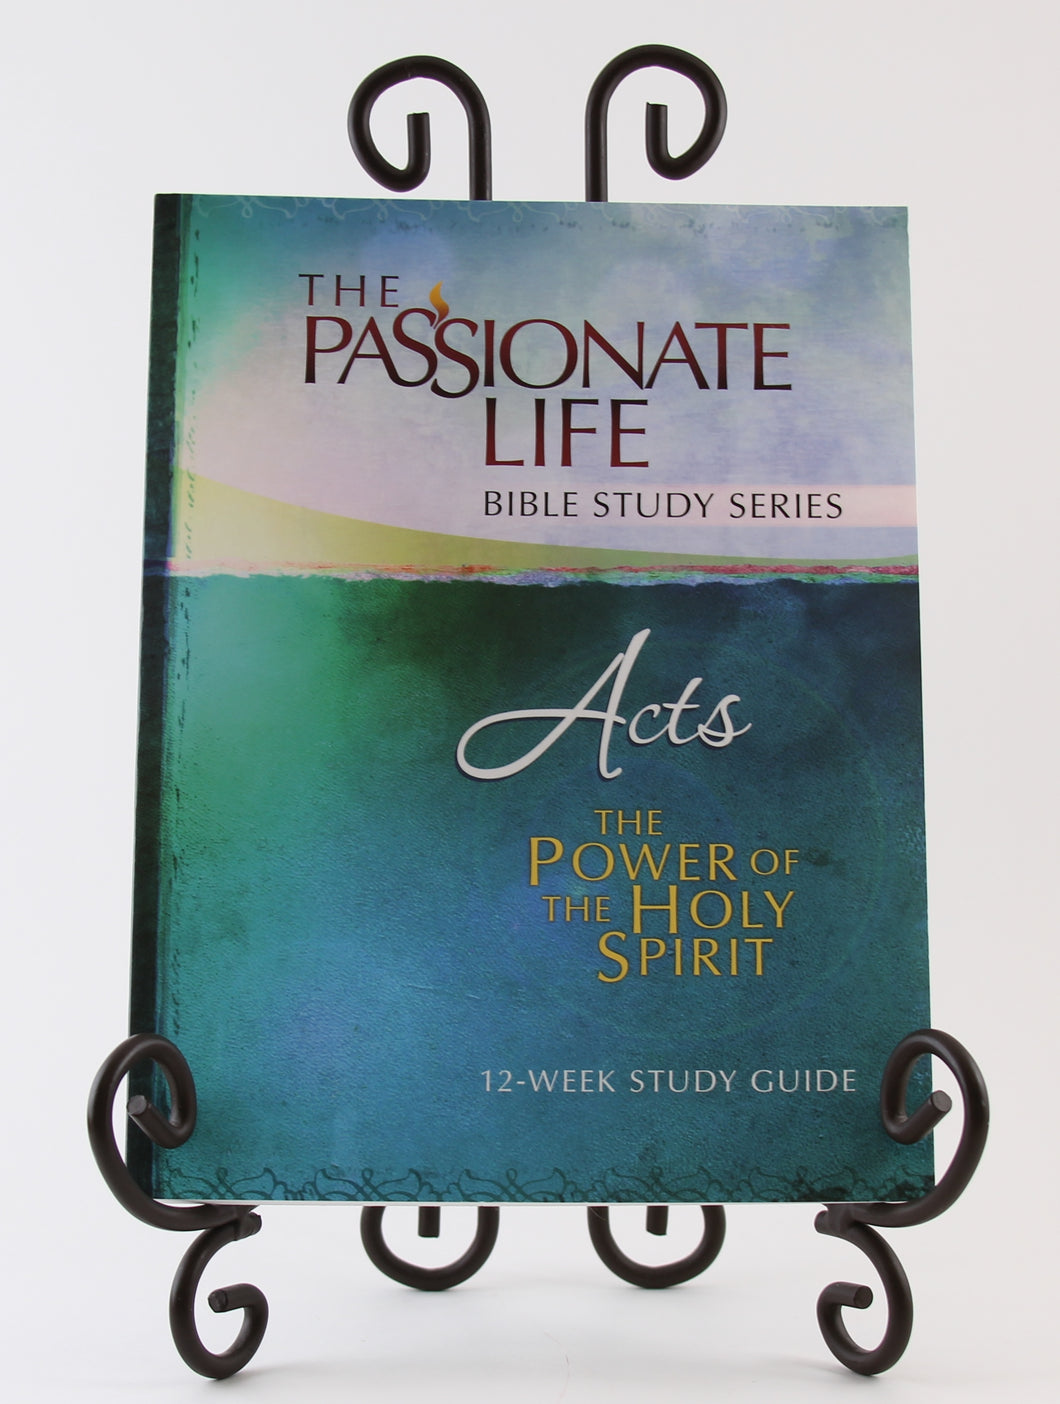 Acts: The Power Of The Holy Spirit 12-Week Study Guide (The Passionate Life Bible Study Series)